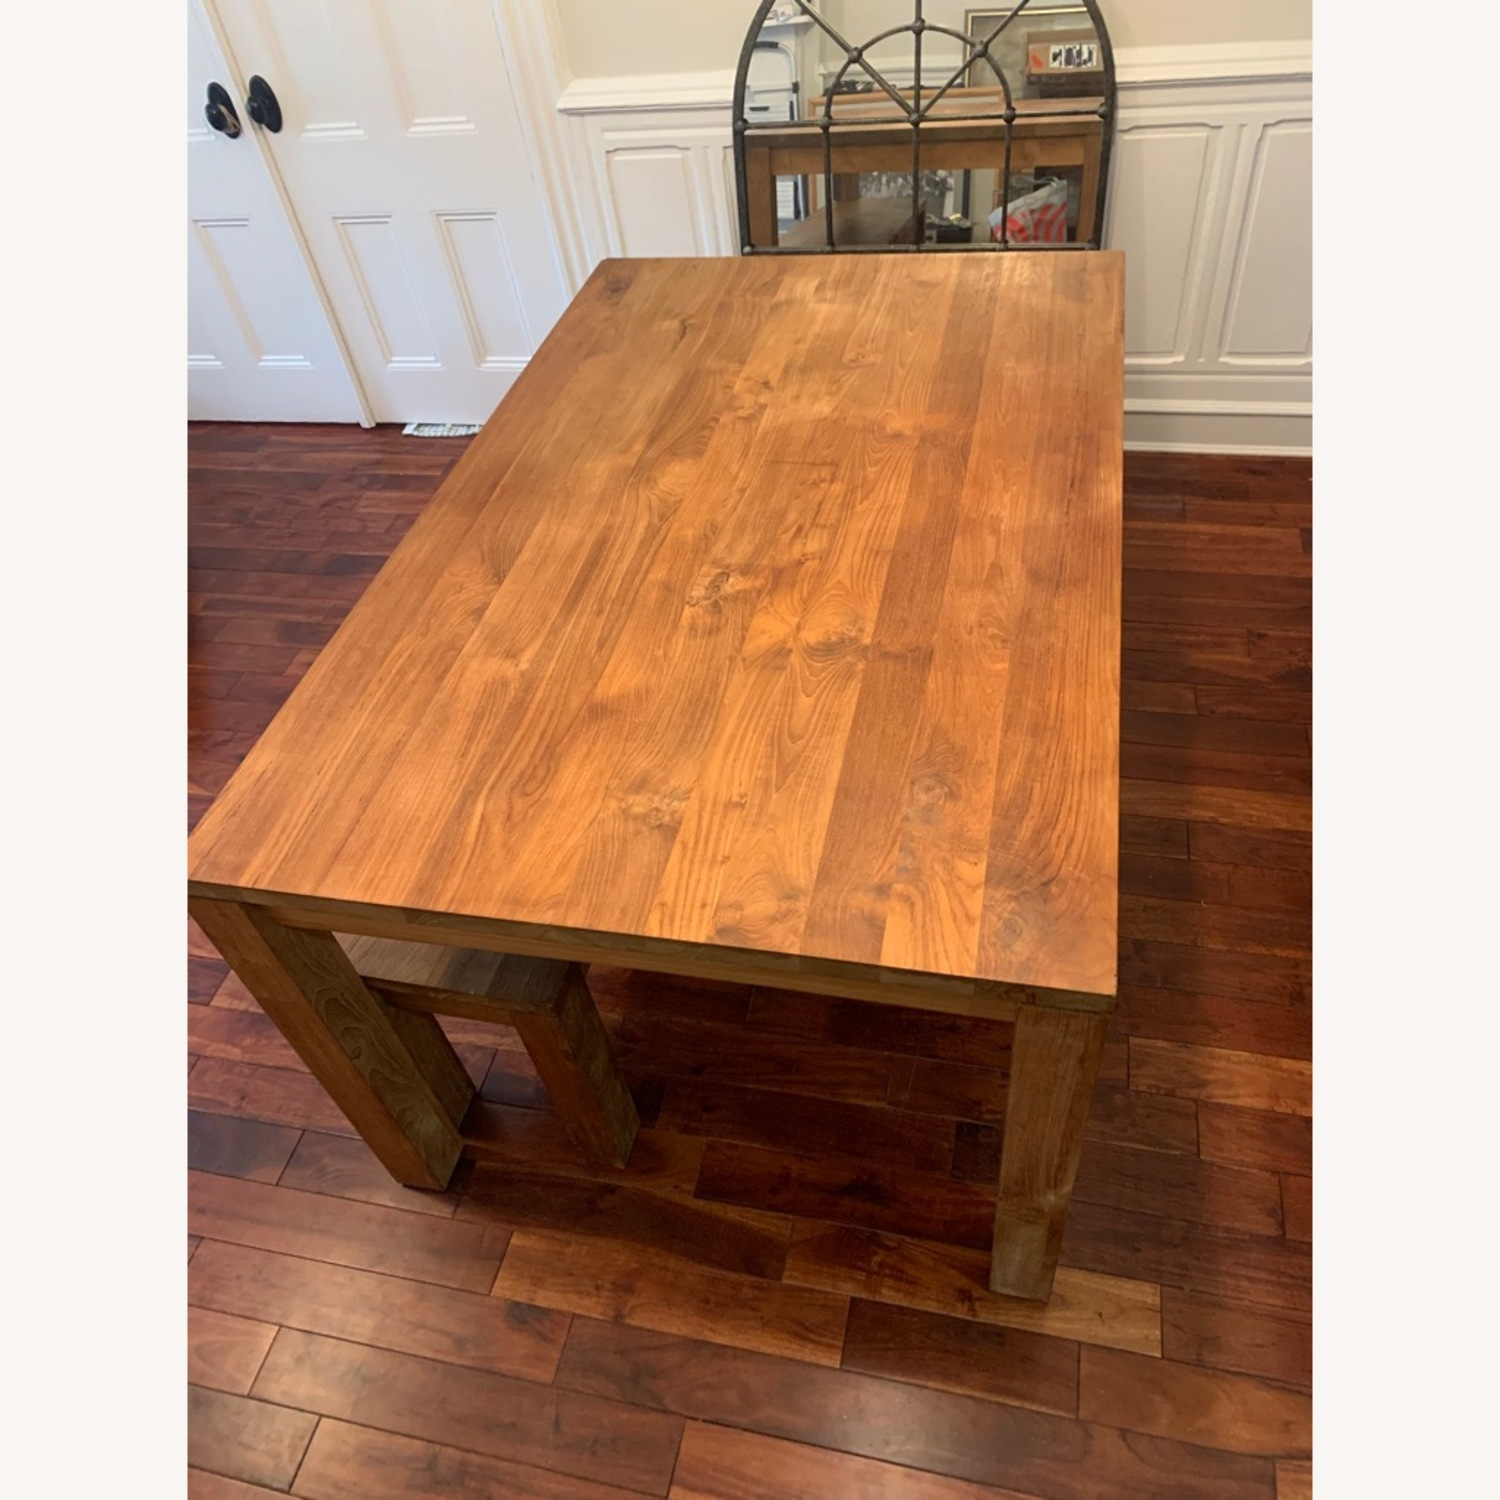 Crate & Barrel Solid Wood Table - image-7